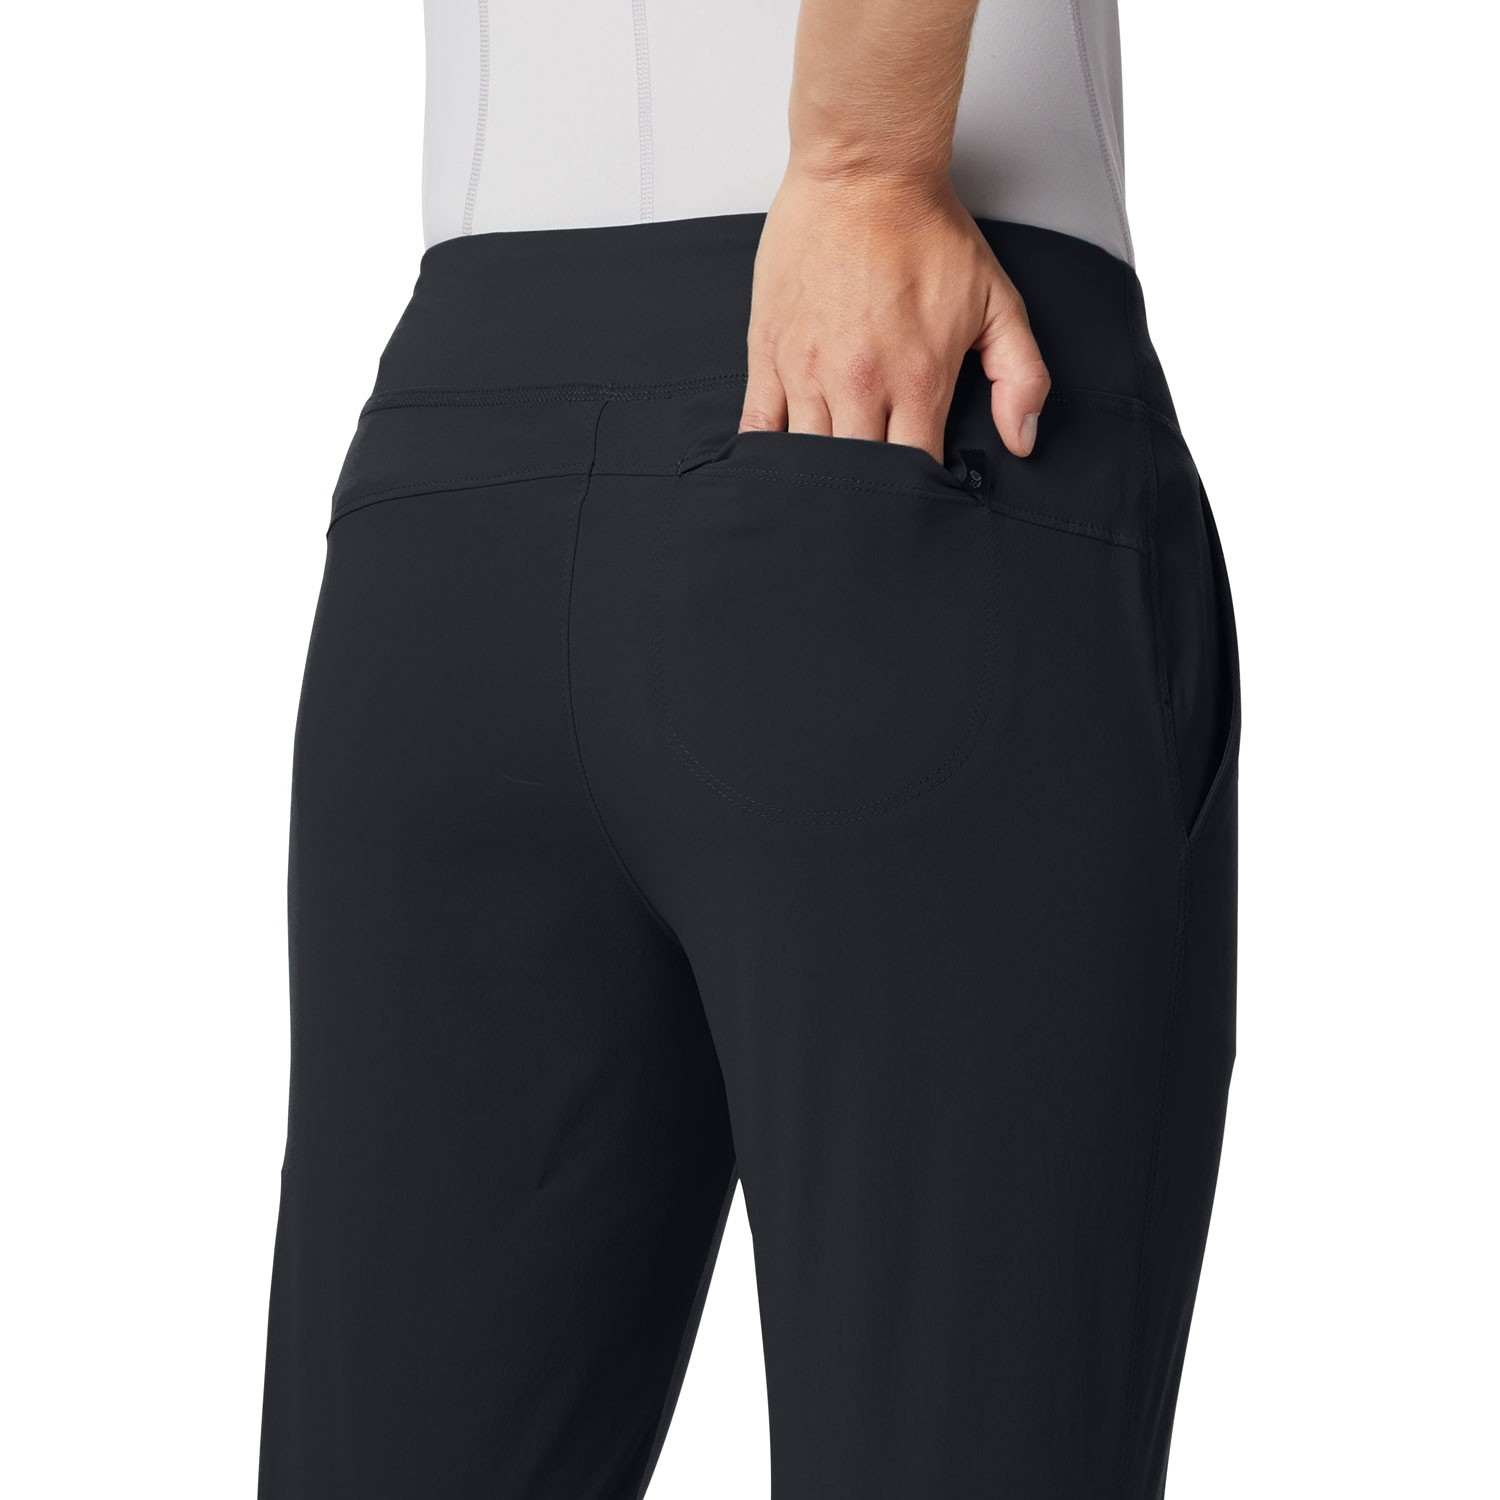 Mountain Hardwear Dynama Ankle Pants - Black - model back pocket